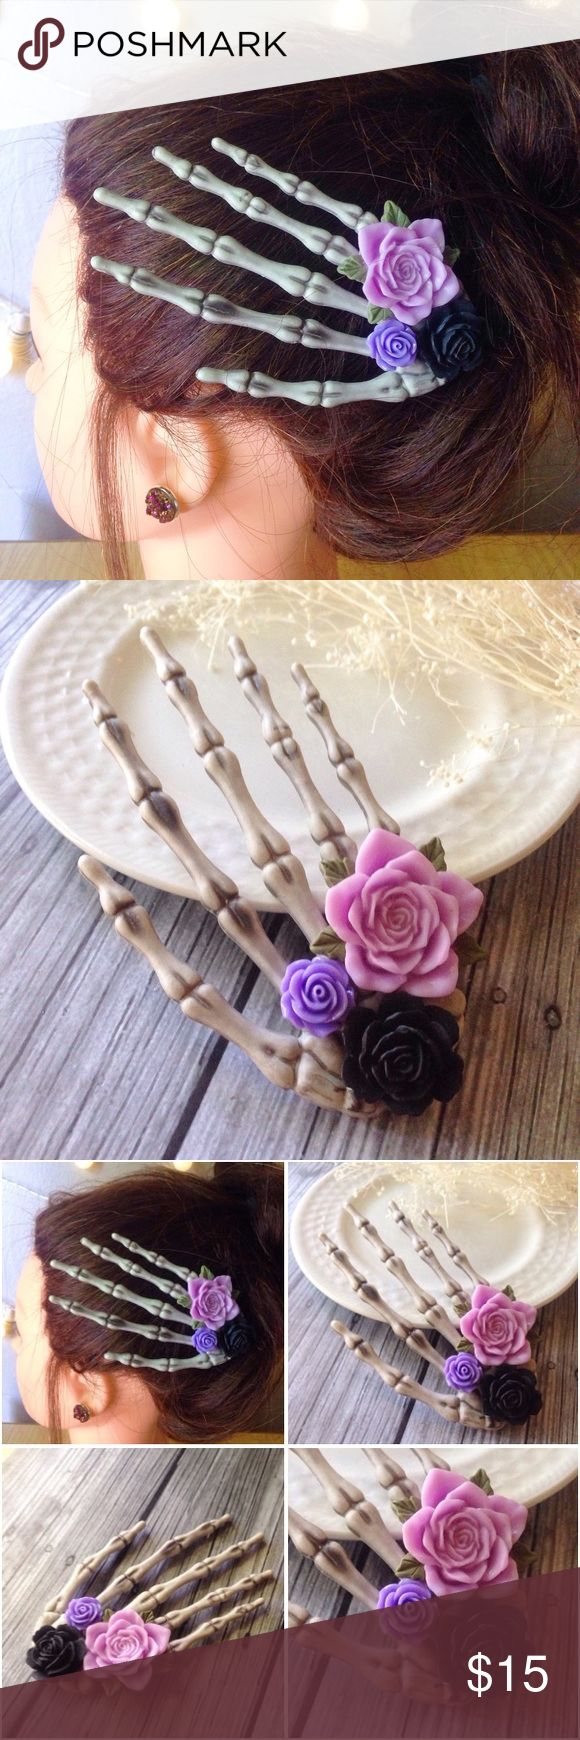 """Sale!Large skeleton hand hair clip with roses This lovely skeleton hand hair clip is adorned with black, violet and lavender roses. Hand measures almost 5"""". Definitely a statement pieceAn alligator clip is securely attached to the back and works well for all hair types. A perfect Halloween accessory, or if you like being spooky all yearHandmade by me & brand new. I also can do custom colored roses. Bundle & save 15% on 3+ items! Tags: October, autumn, fall…"""